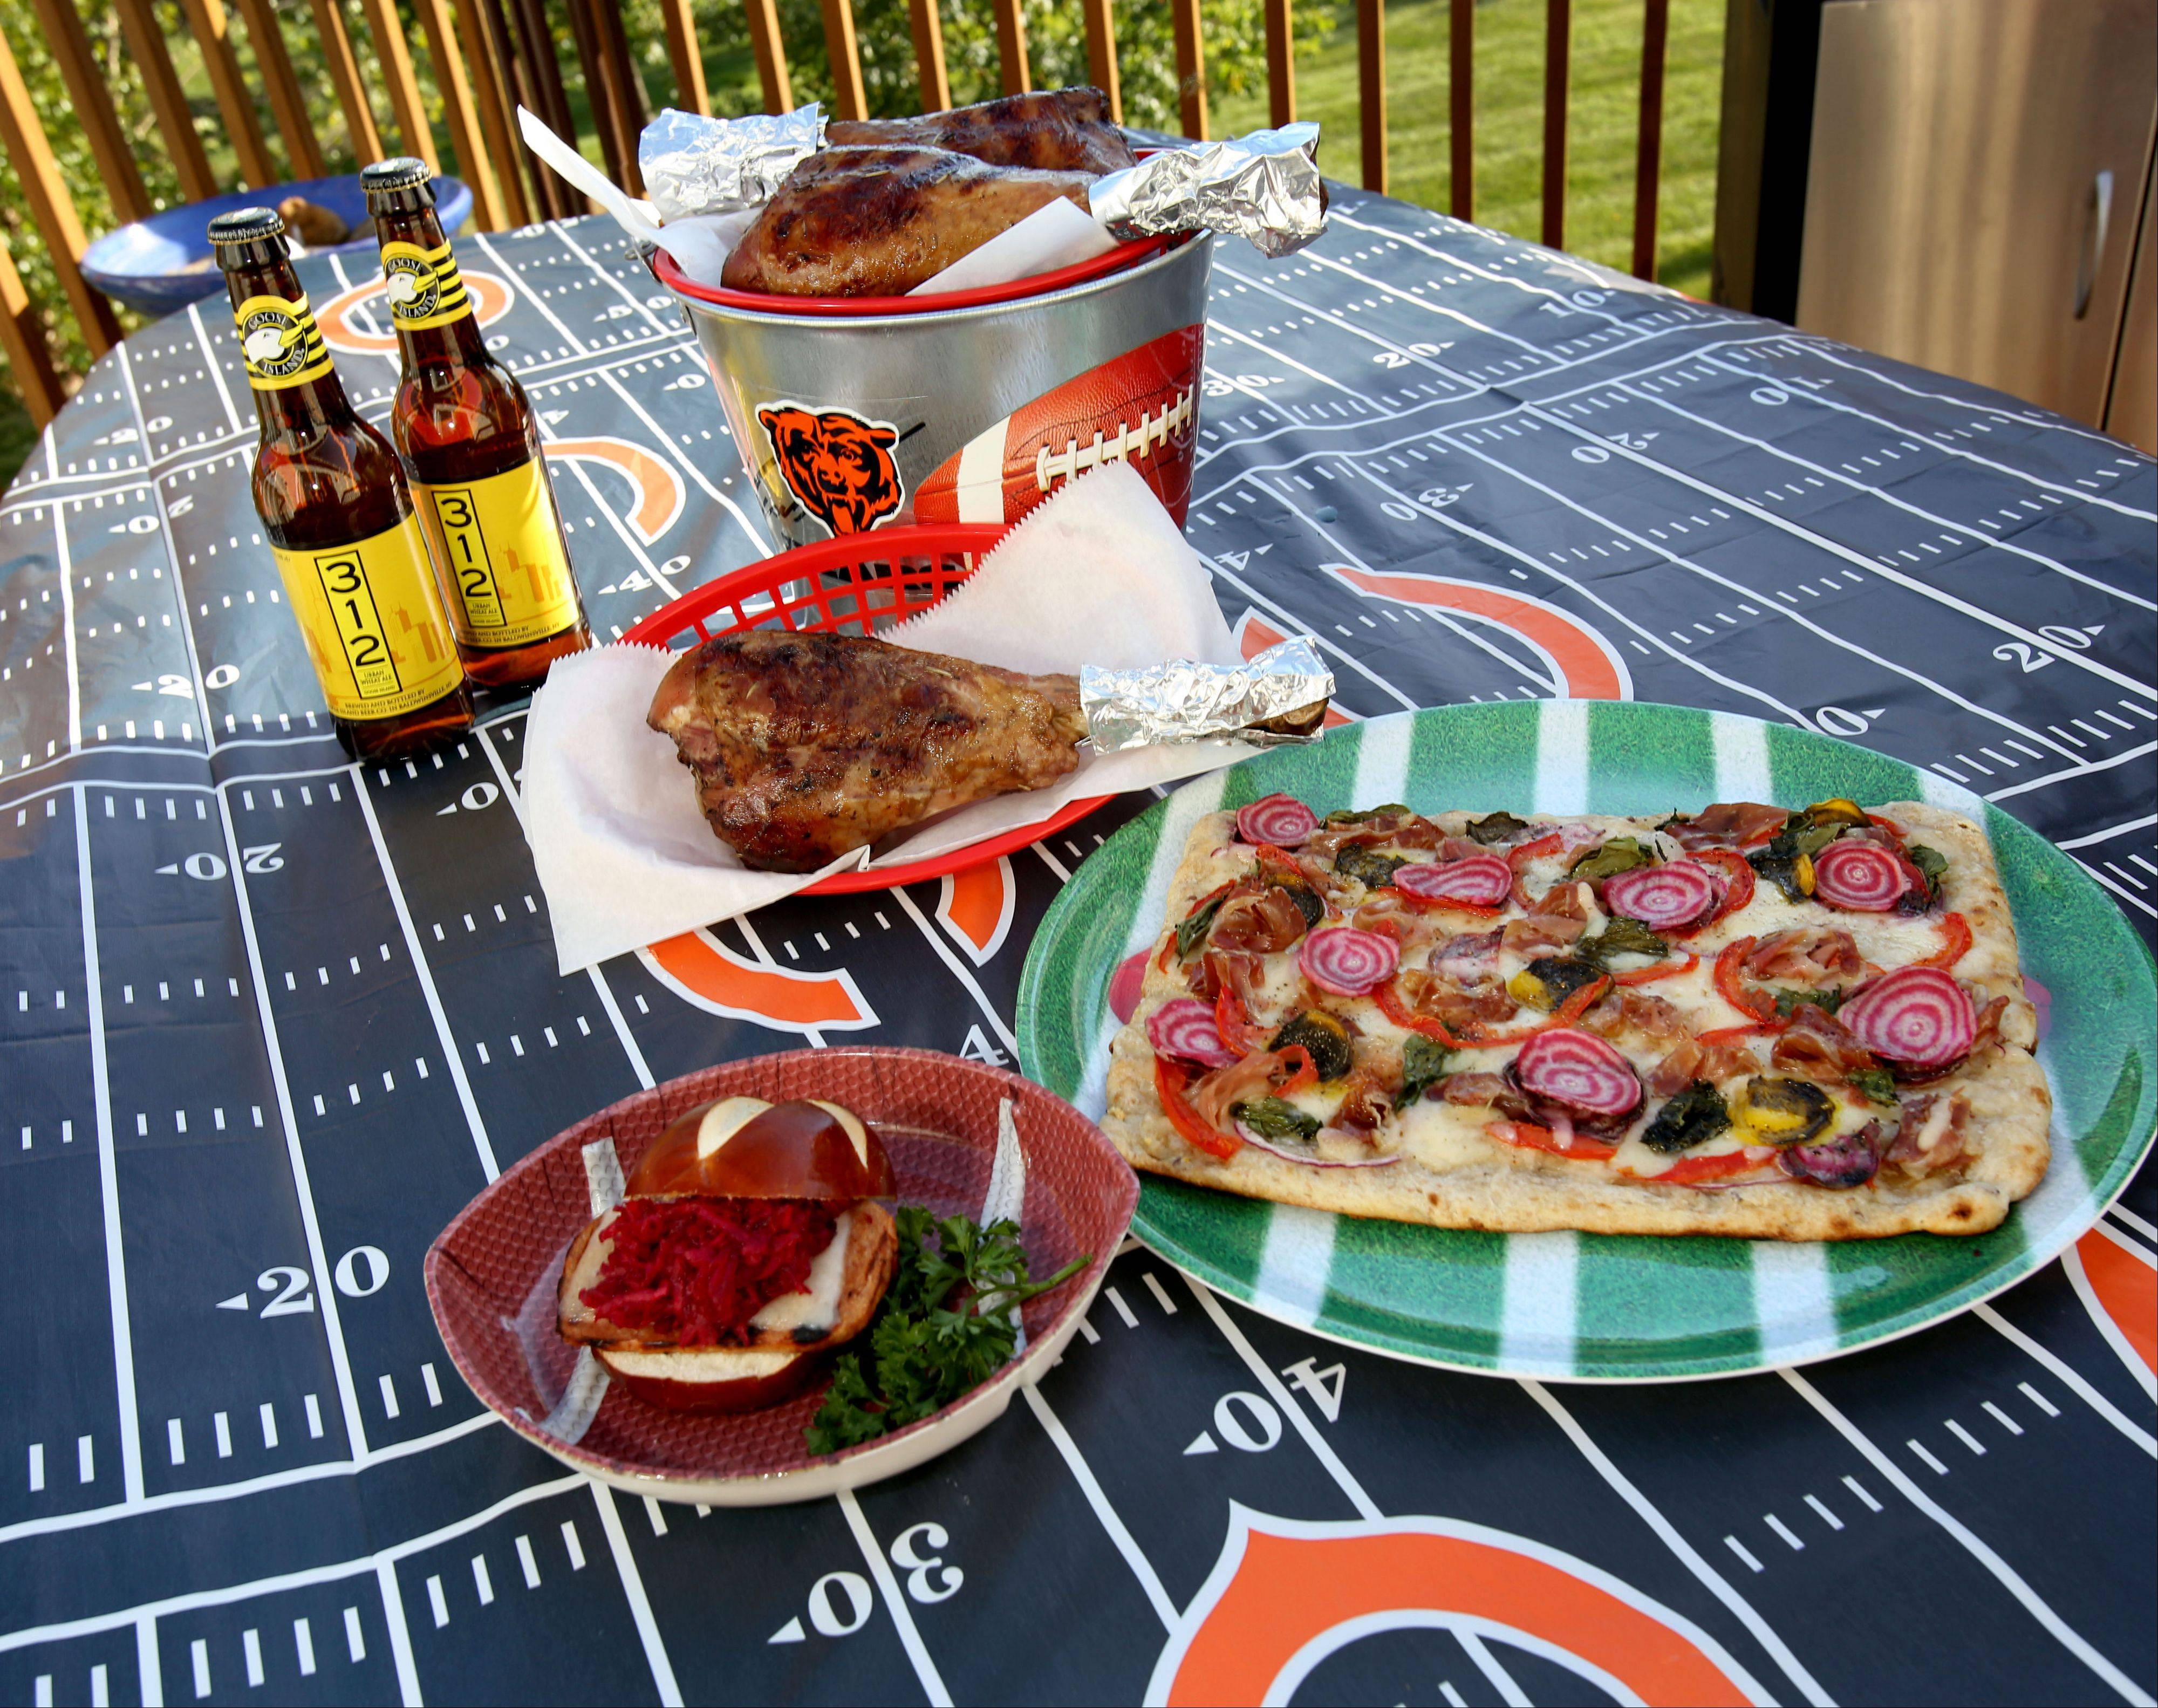 Lori Wiktorek�s game day spread includes grilled pizza, topped with thinly sliced beets and prosciutto, beet slaw and havarti-topped Spam sliders and apple cider-brined turkey legs.